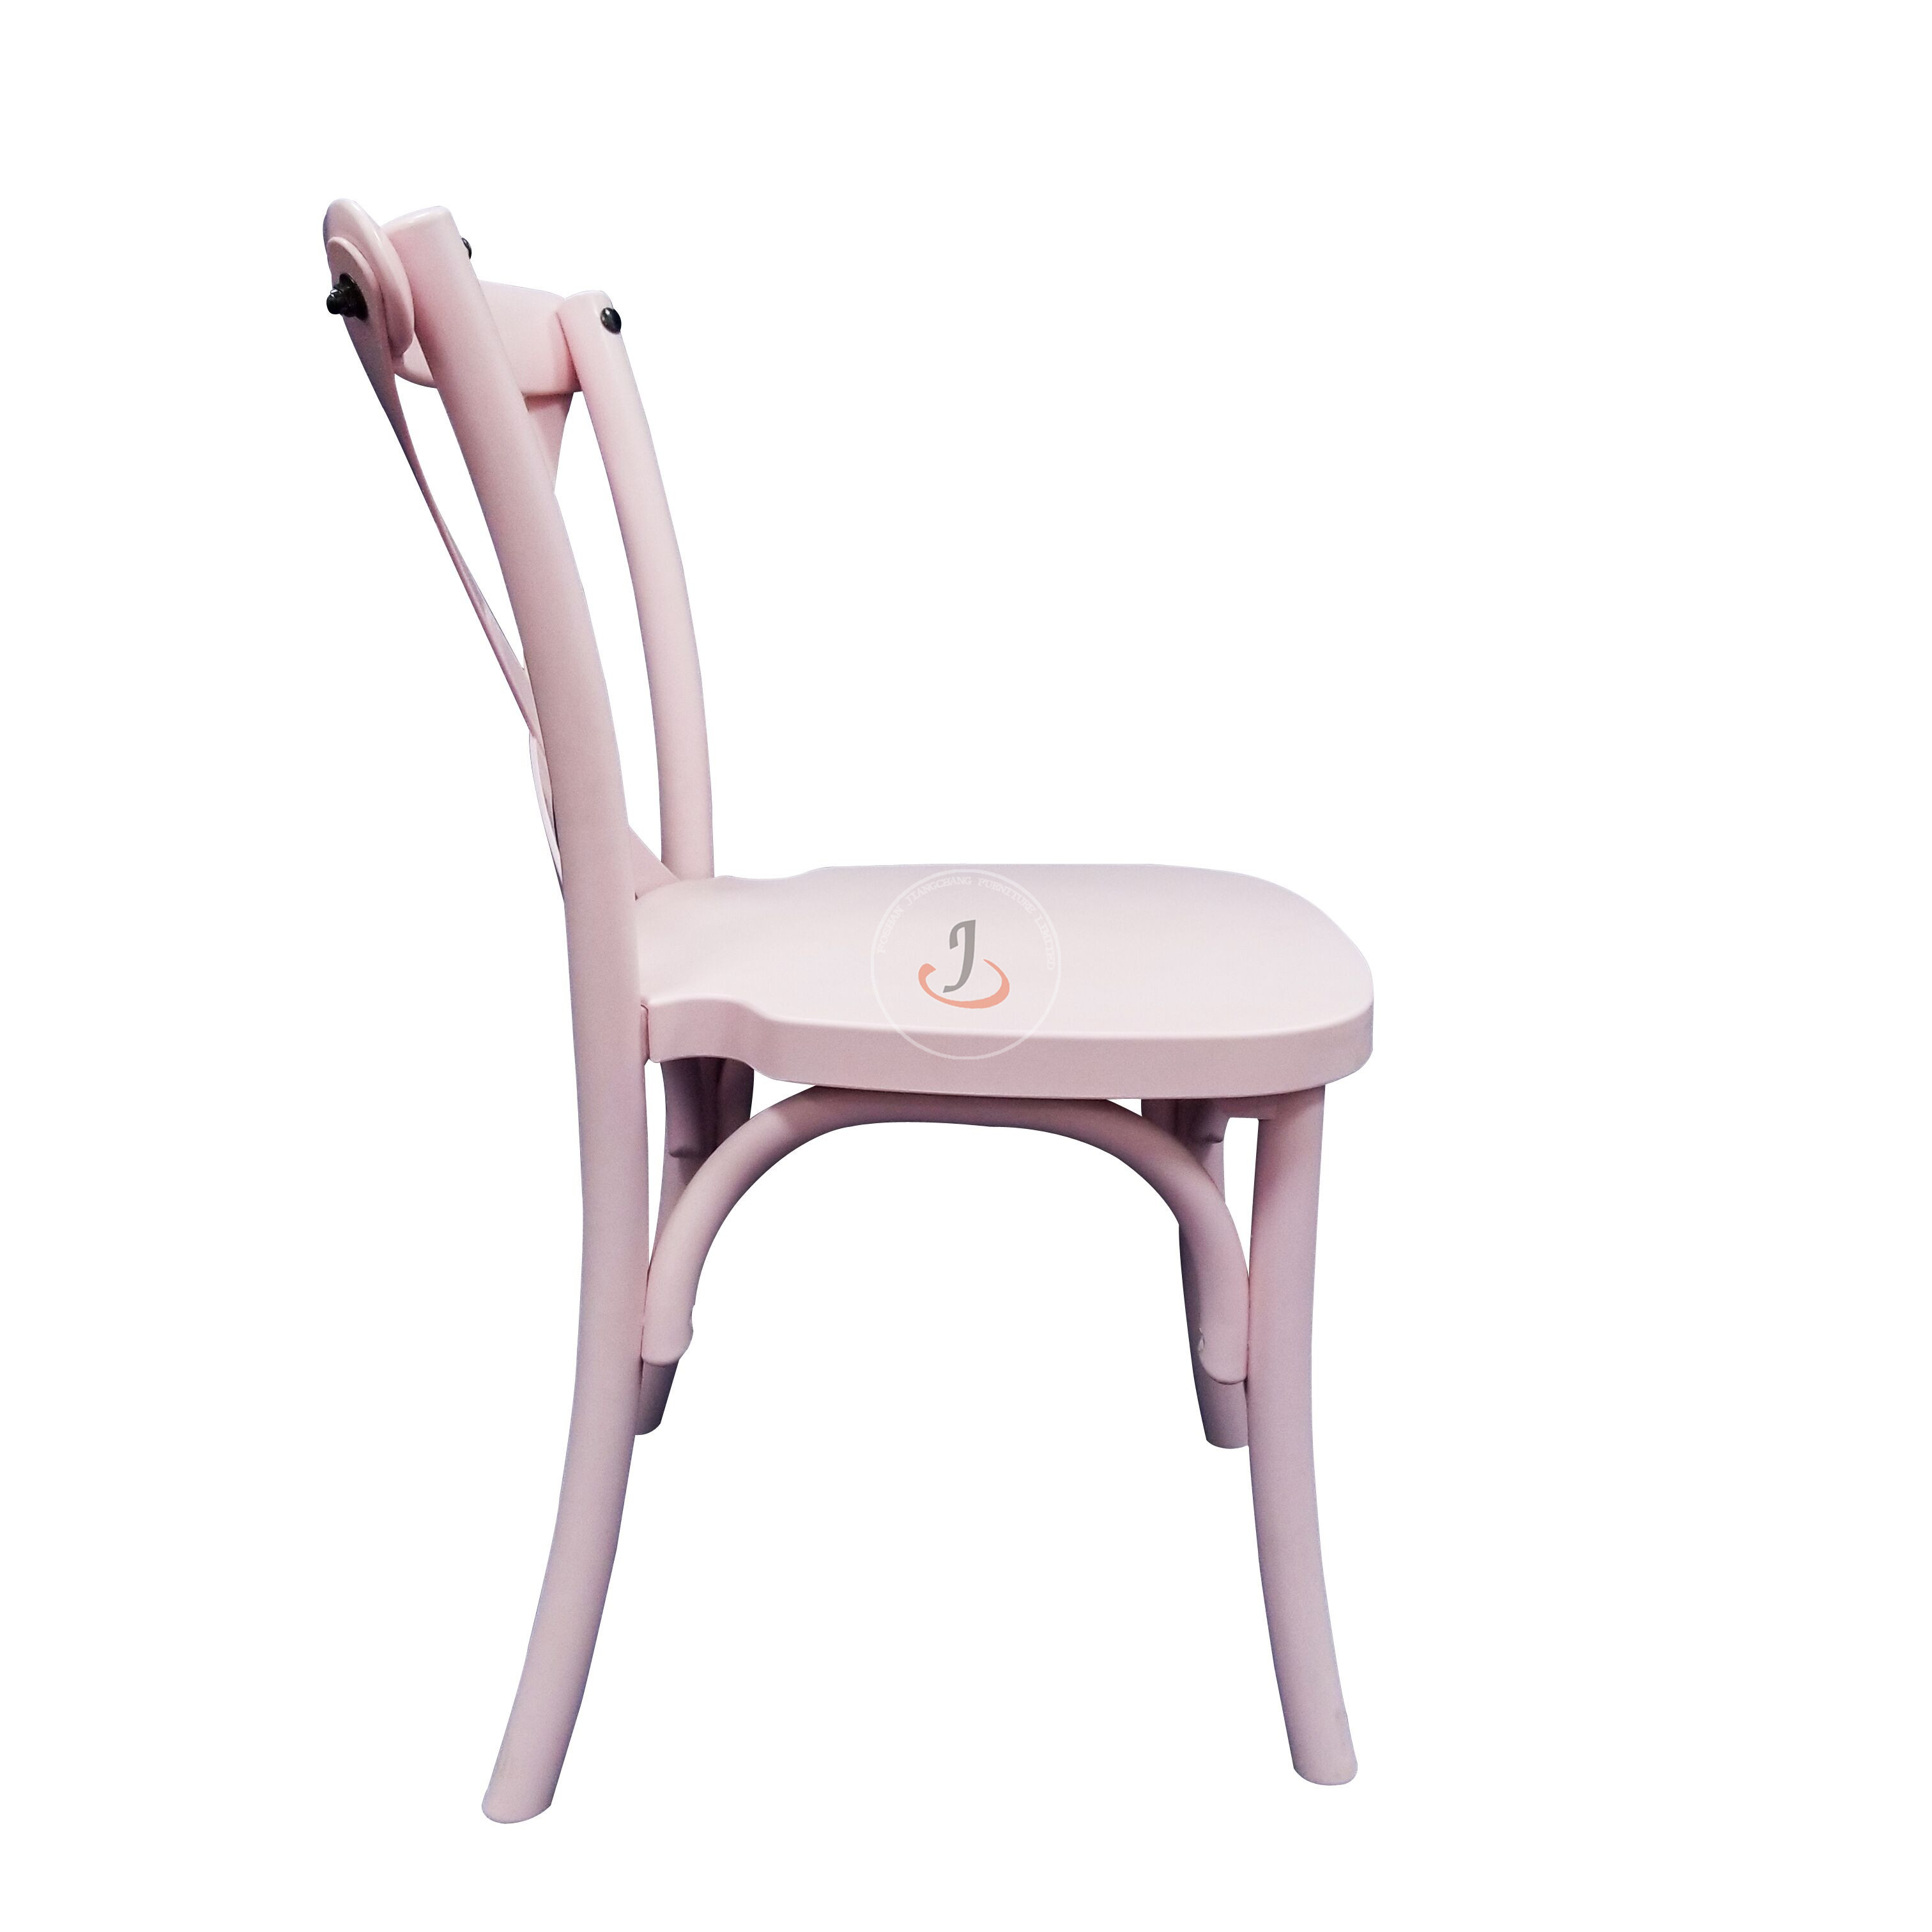 Low MOQ for Pastor Church Chair Used -